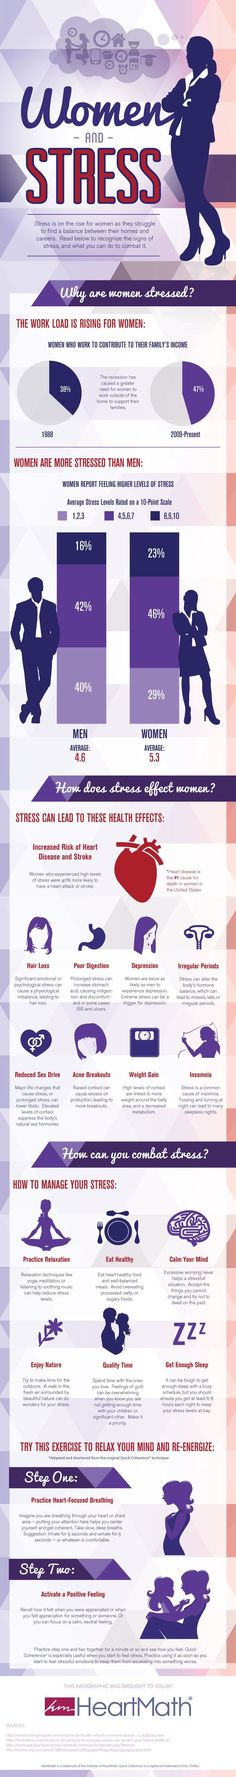 #DidYouKnow stress affects men and women differently? Here are some tips to help!